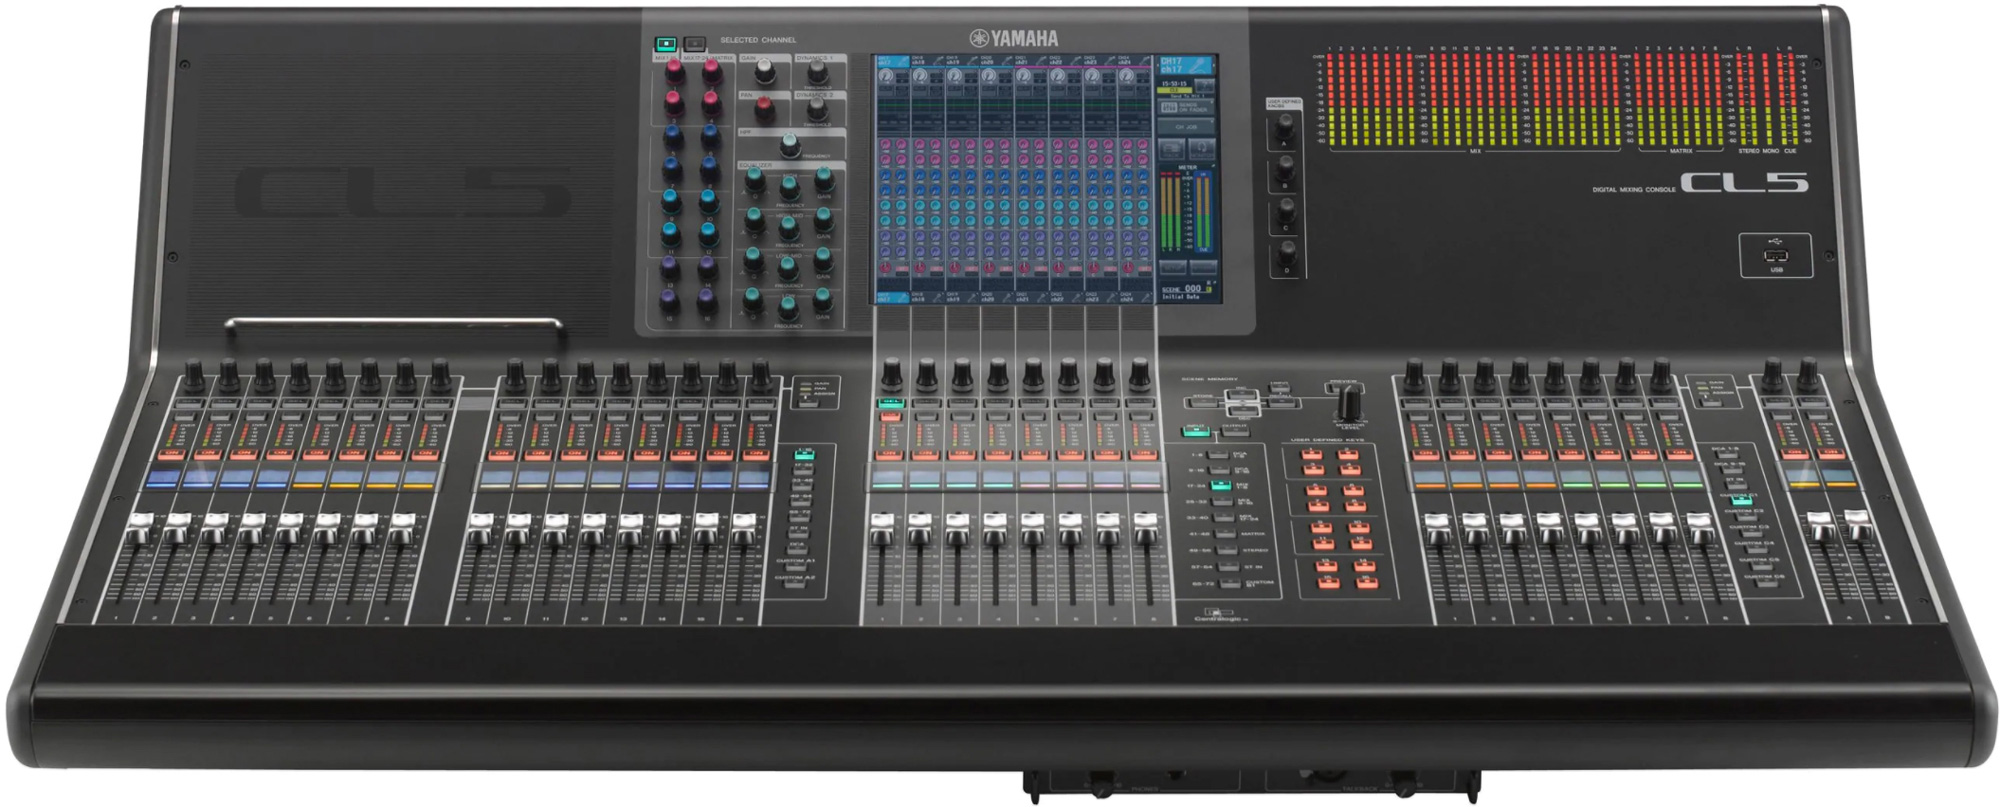 Yamaha CL5 72-Input Digital Audio Mixing Console CL5